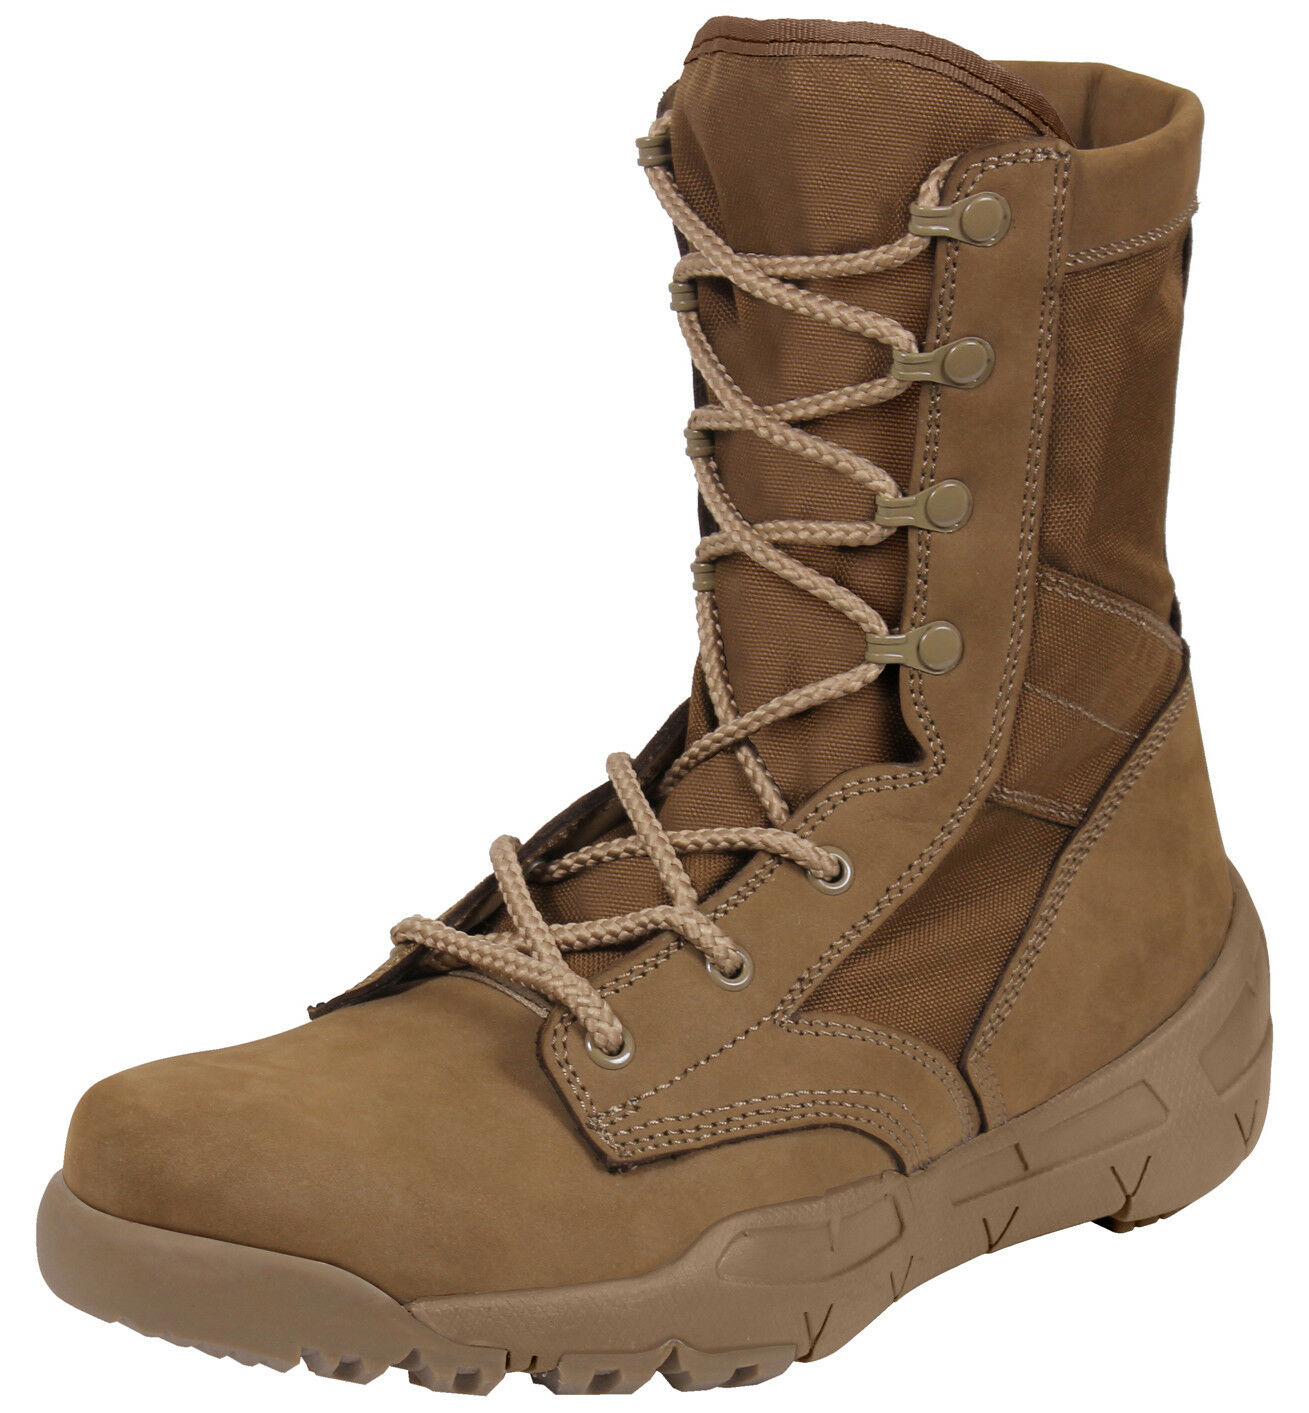 US Army Coyote Brown Military Boot Lightweight V-Max Combat Boots Rothco 5366